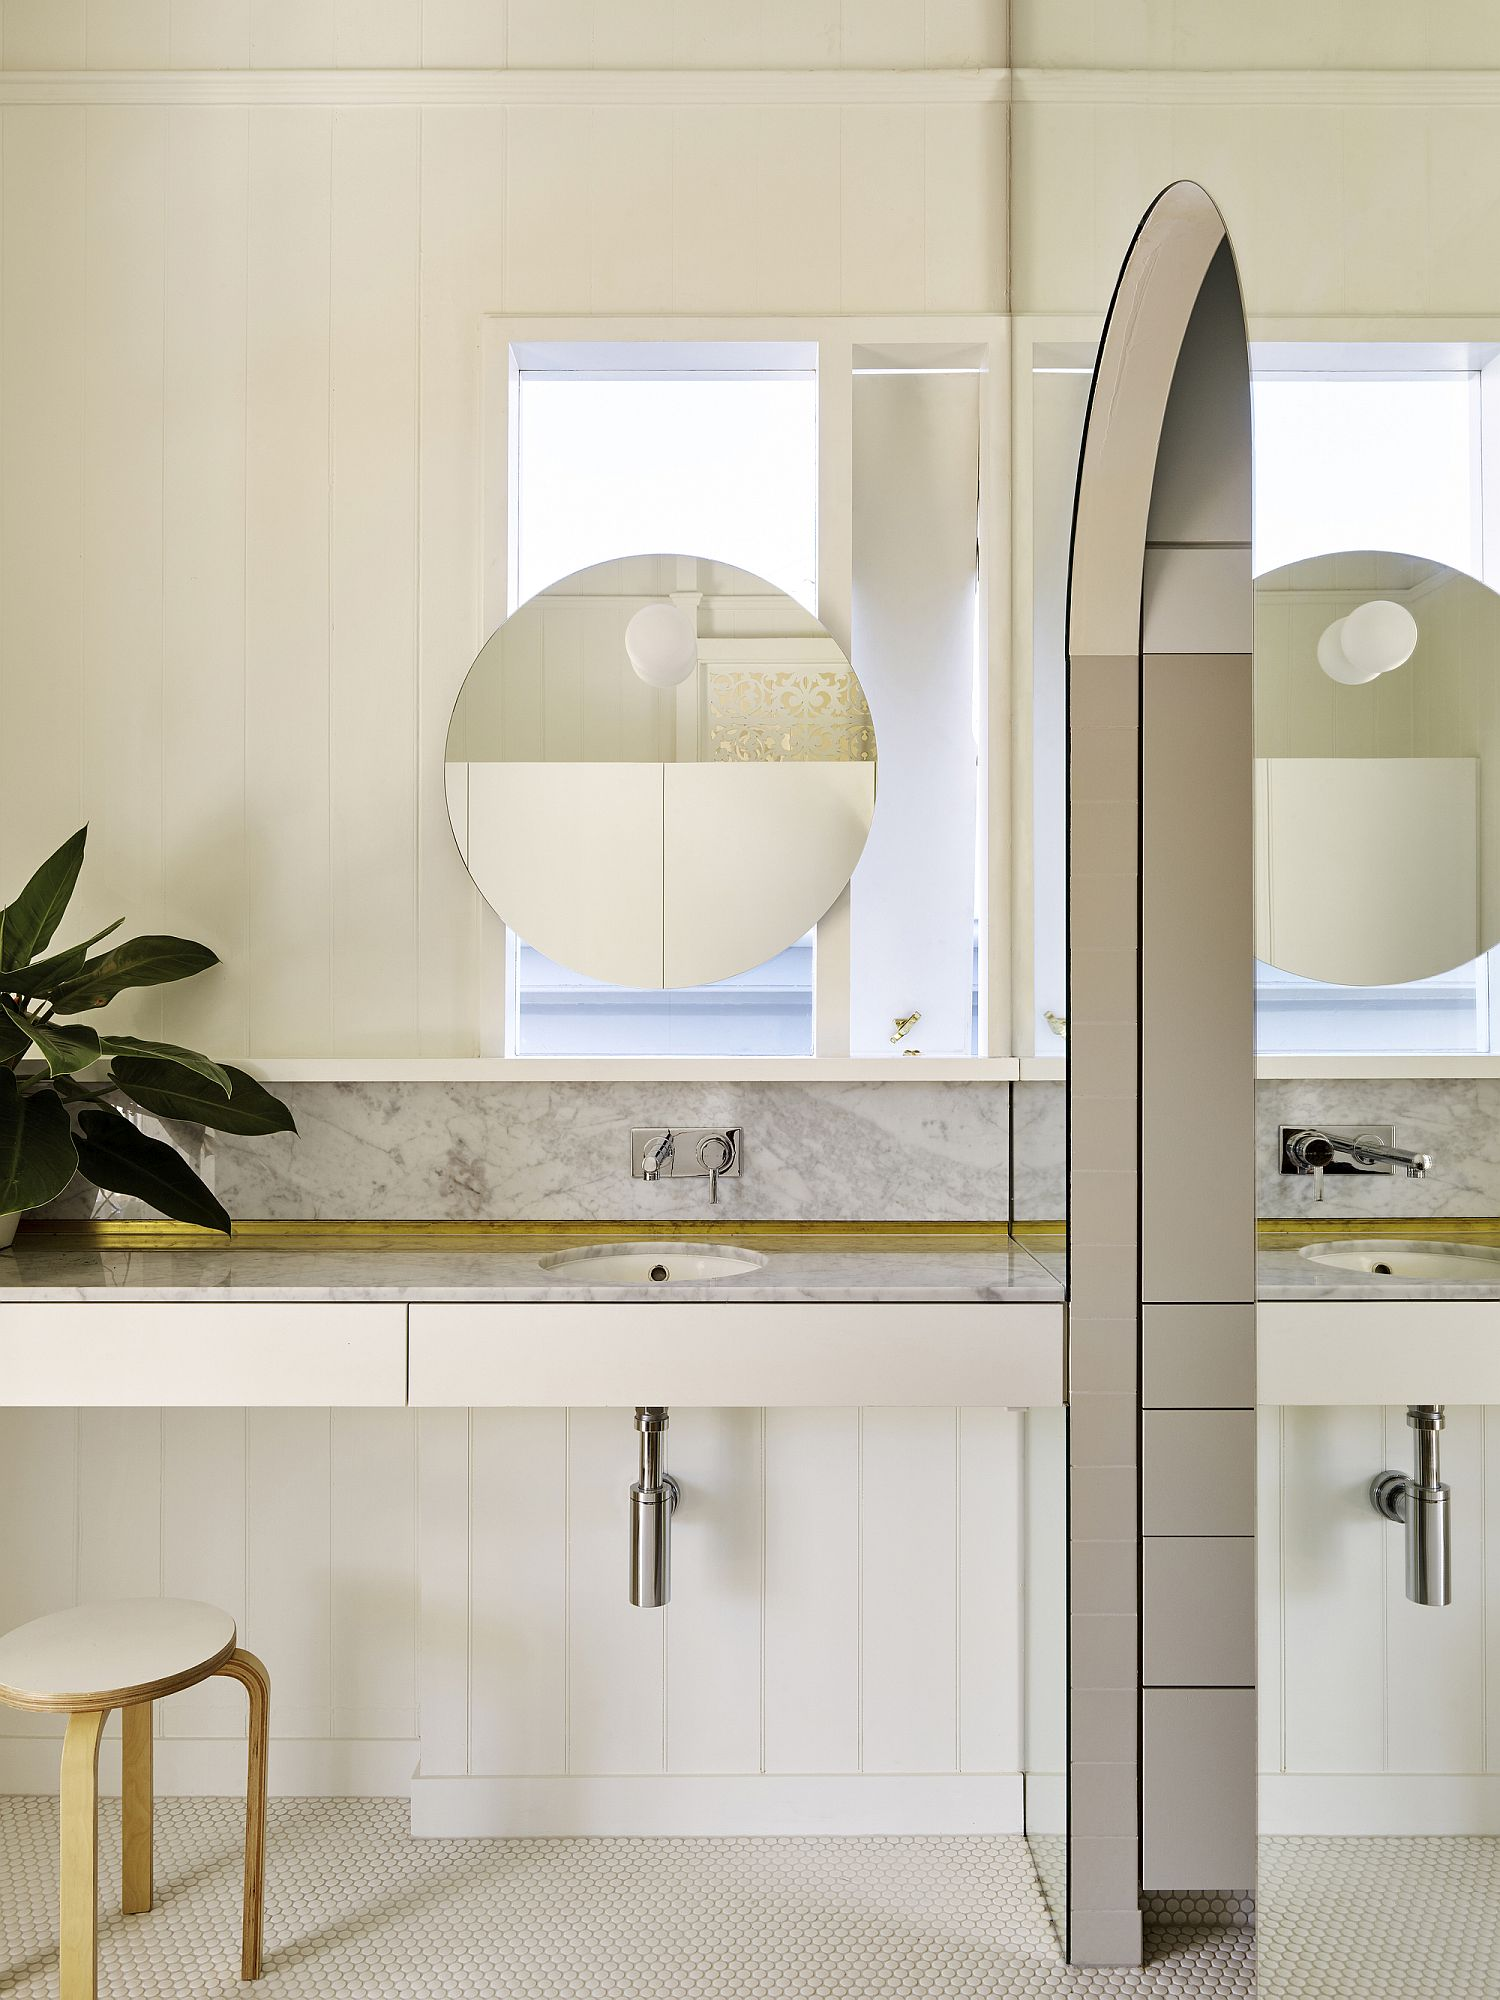 A touch of gold brightens the bathroom in white and wood